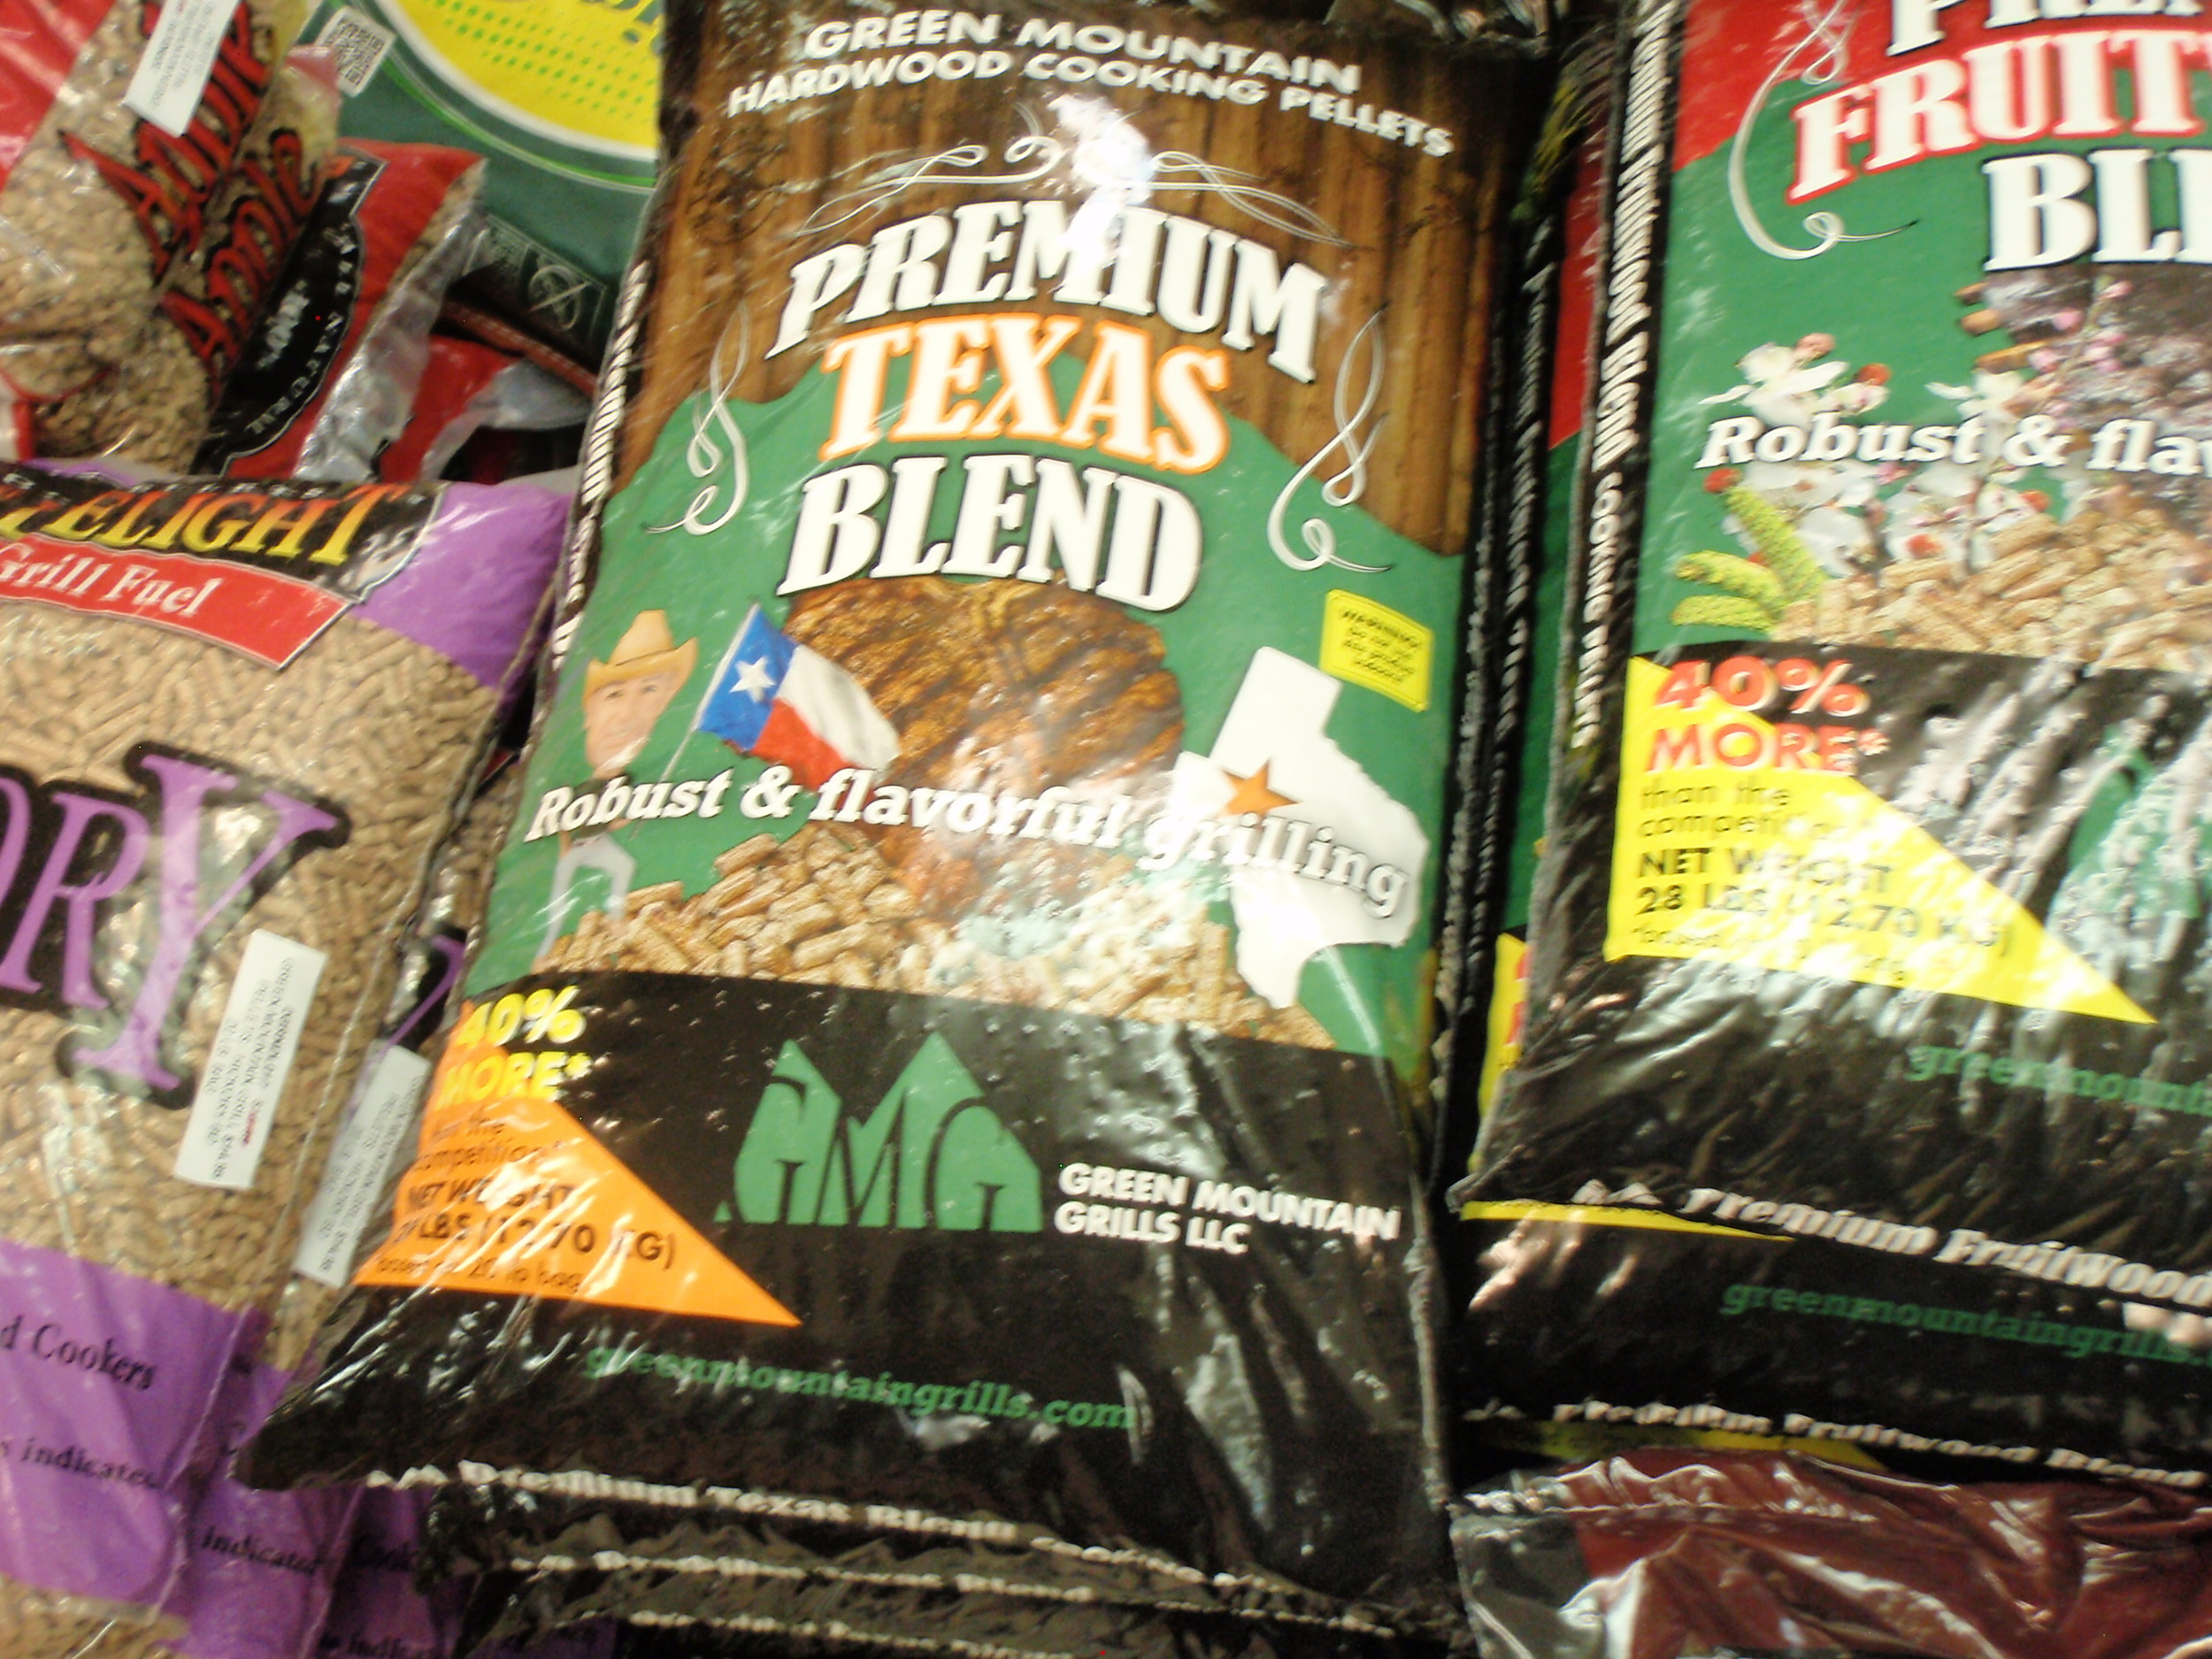 We stock a variety of pellet cooking fuel.  Suit your cooking to a T!